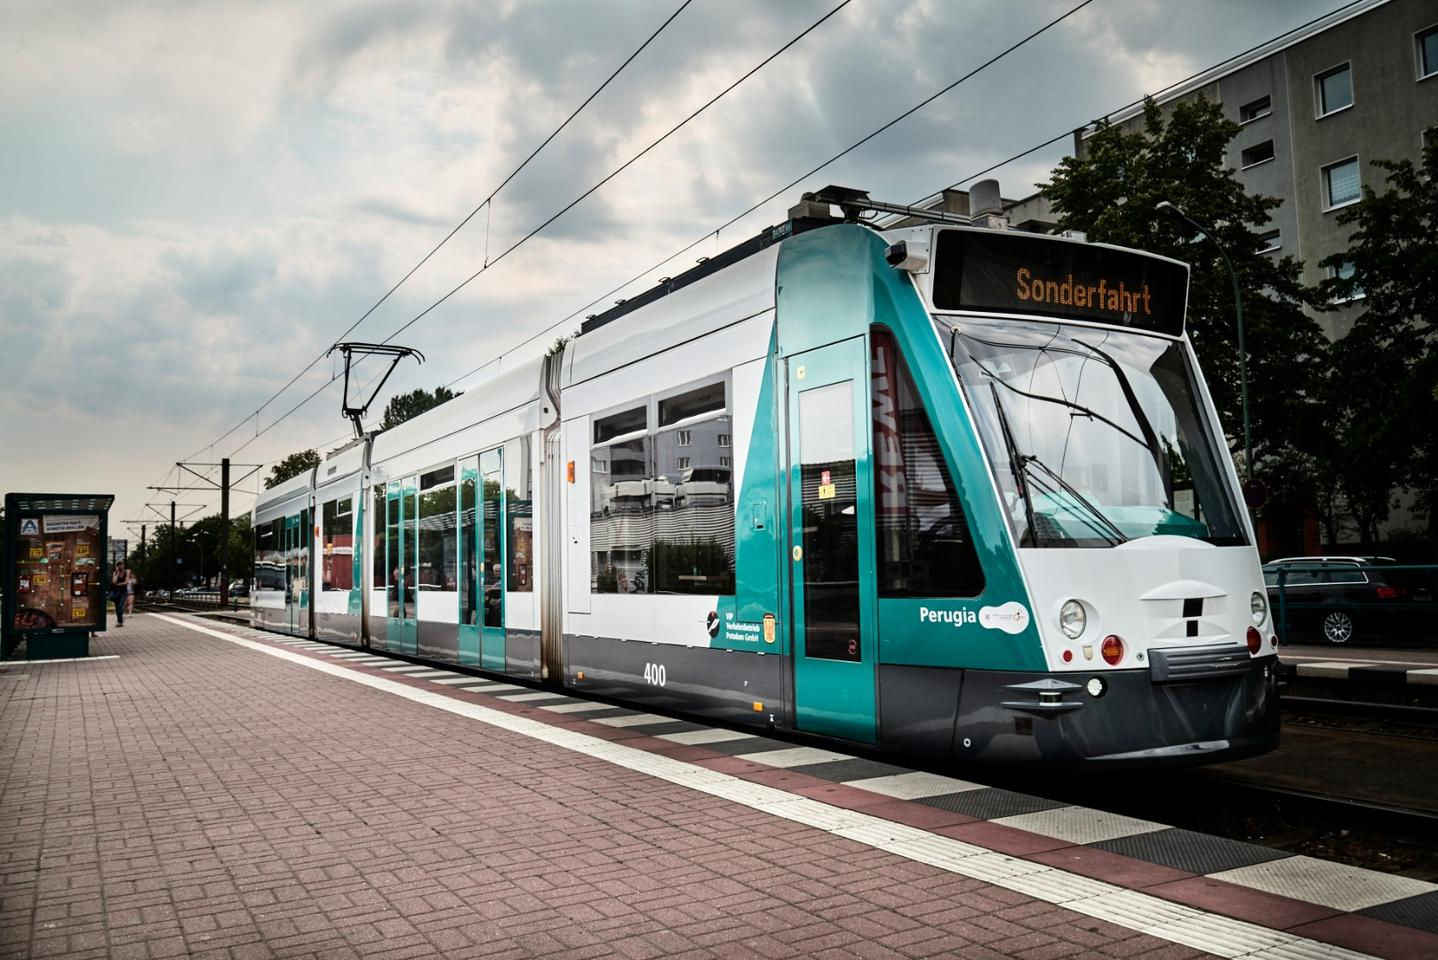 The Combino tram developed by Siemenswas put to work on a 6-kilometer (3.7-mi) section of test track